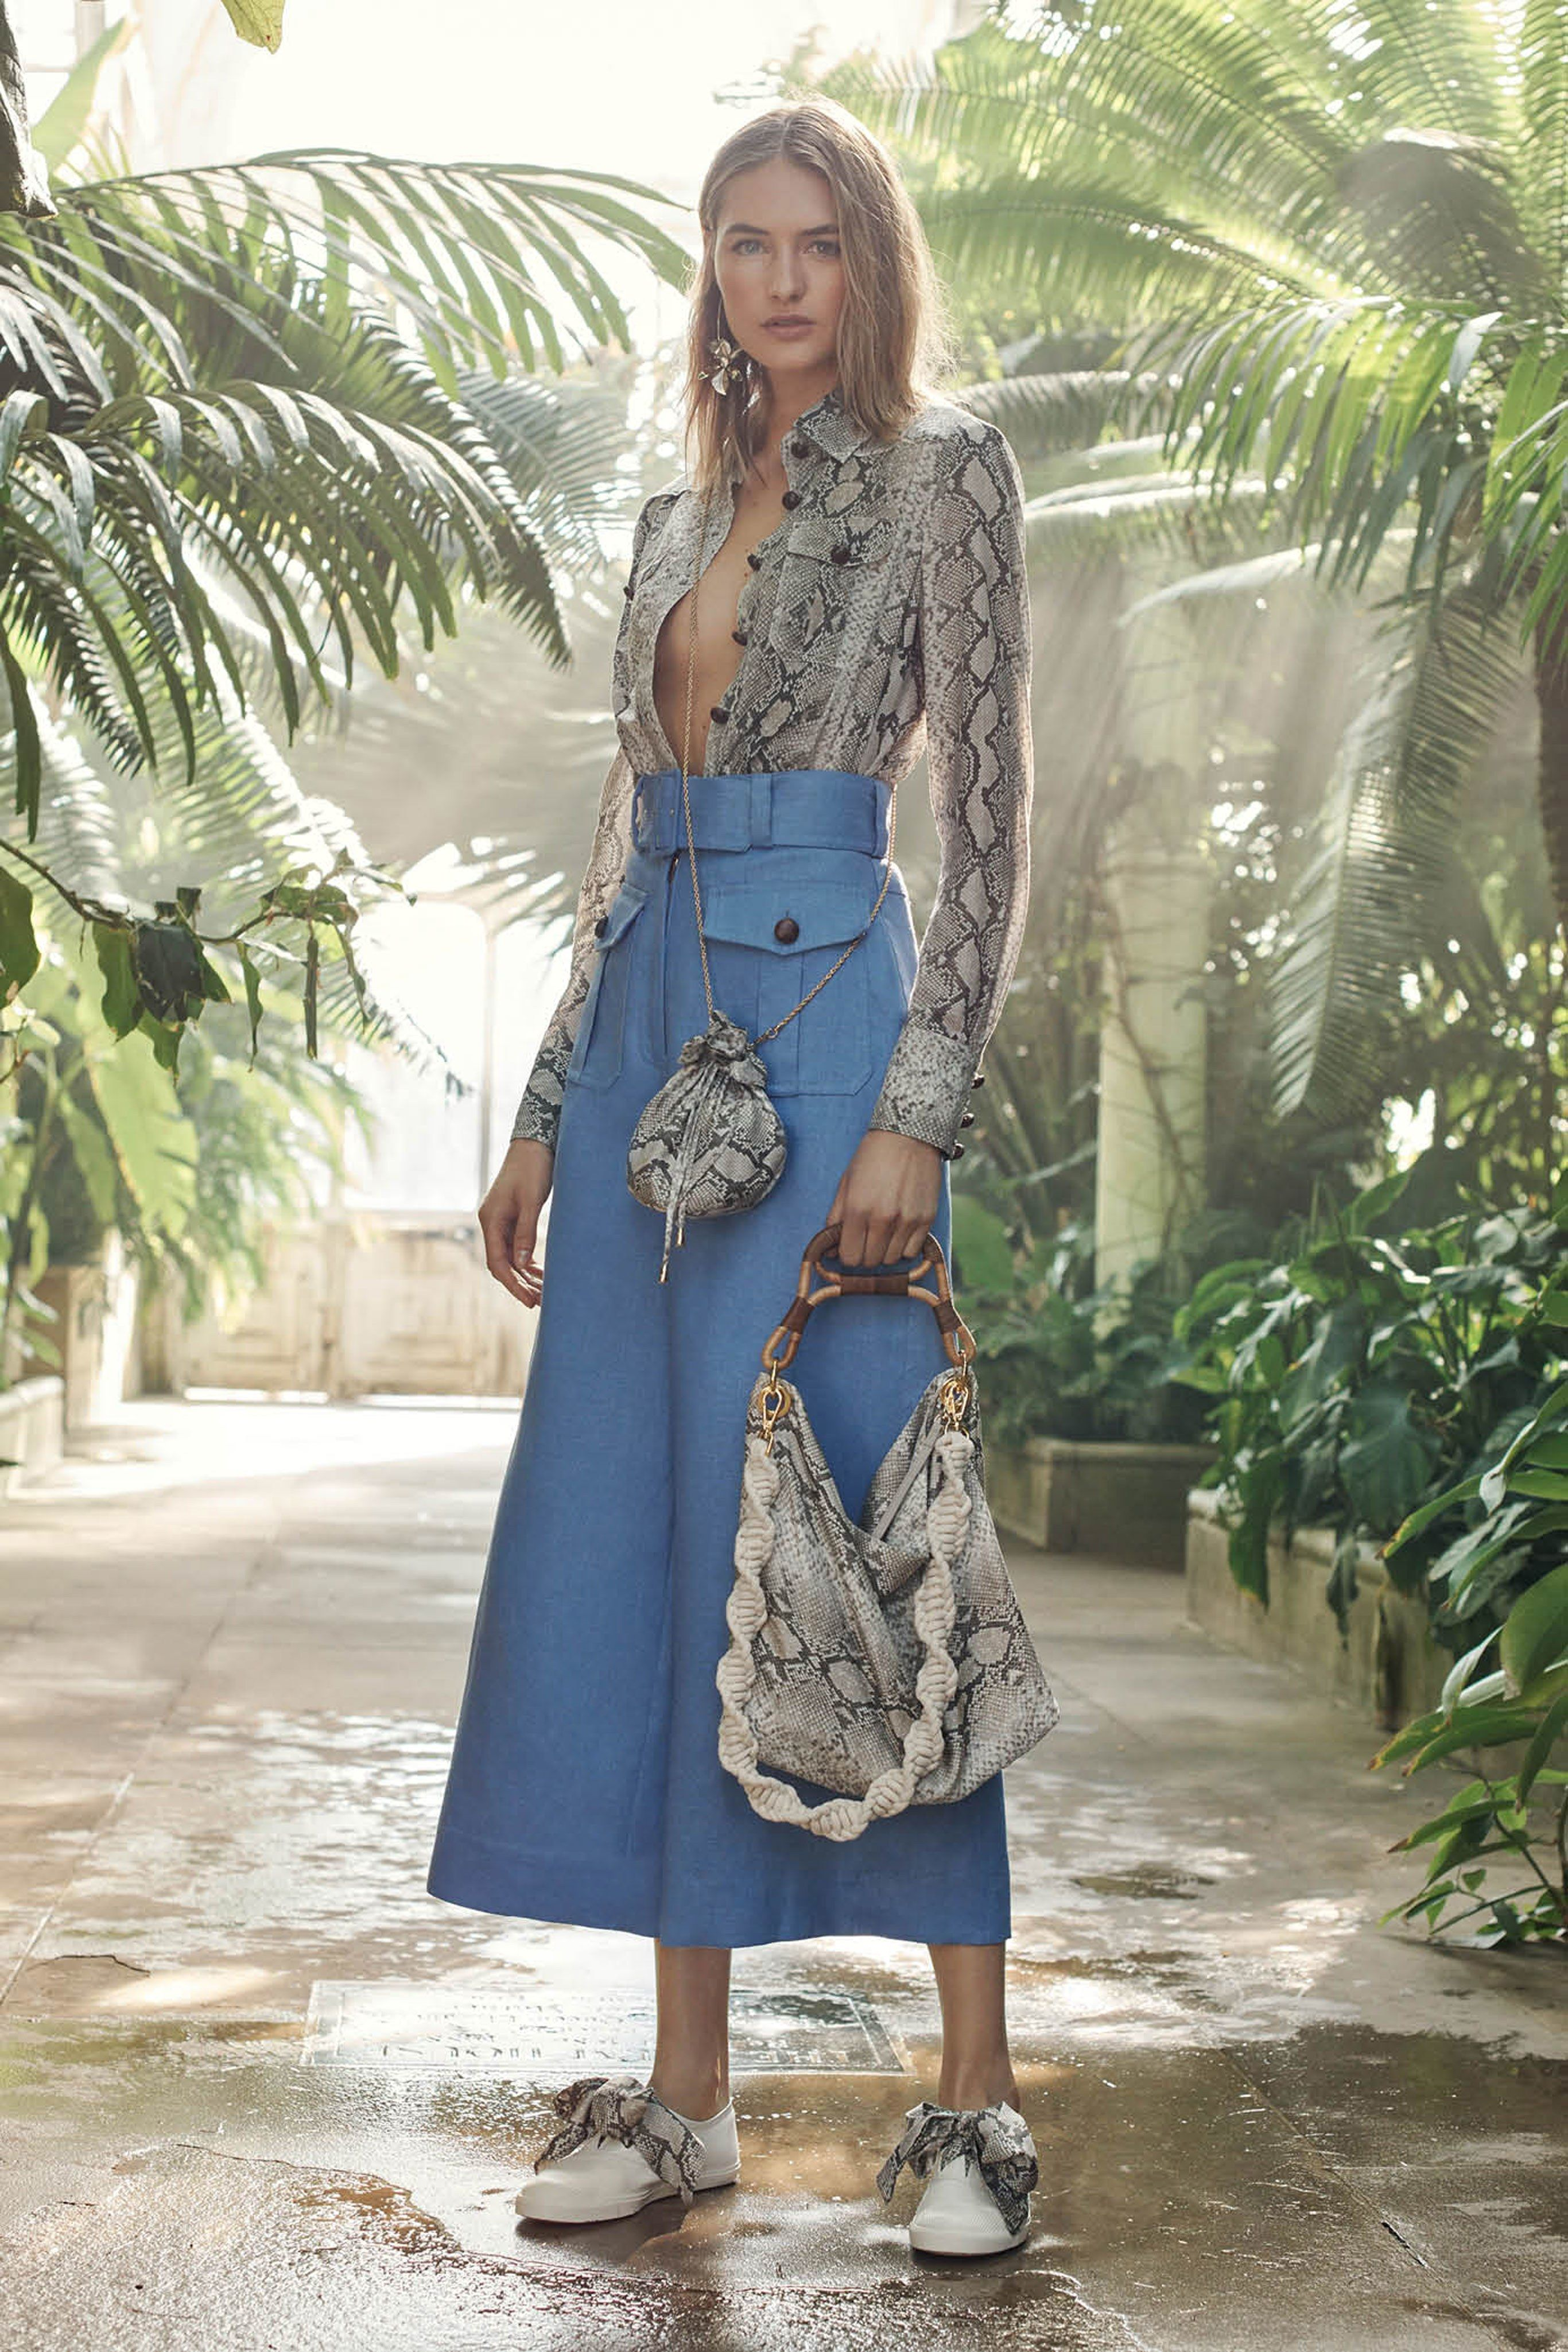 Zimmermann resort fashion show in style street smart